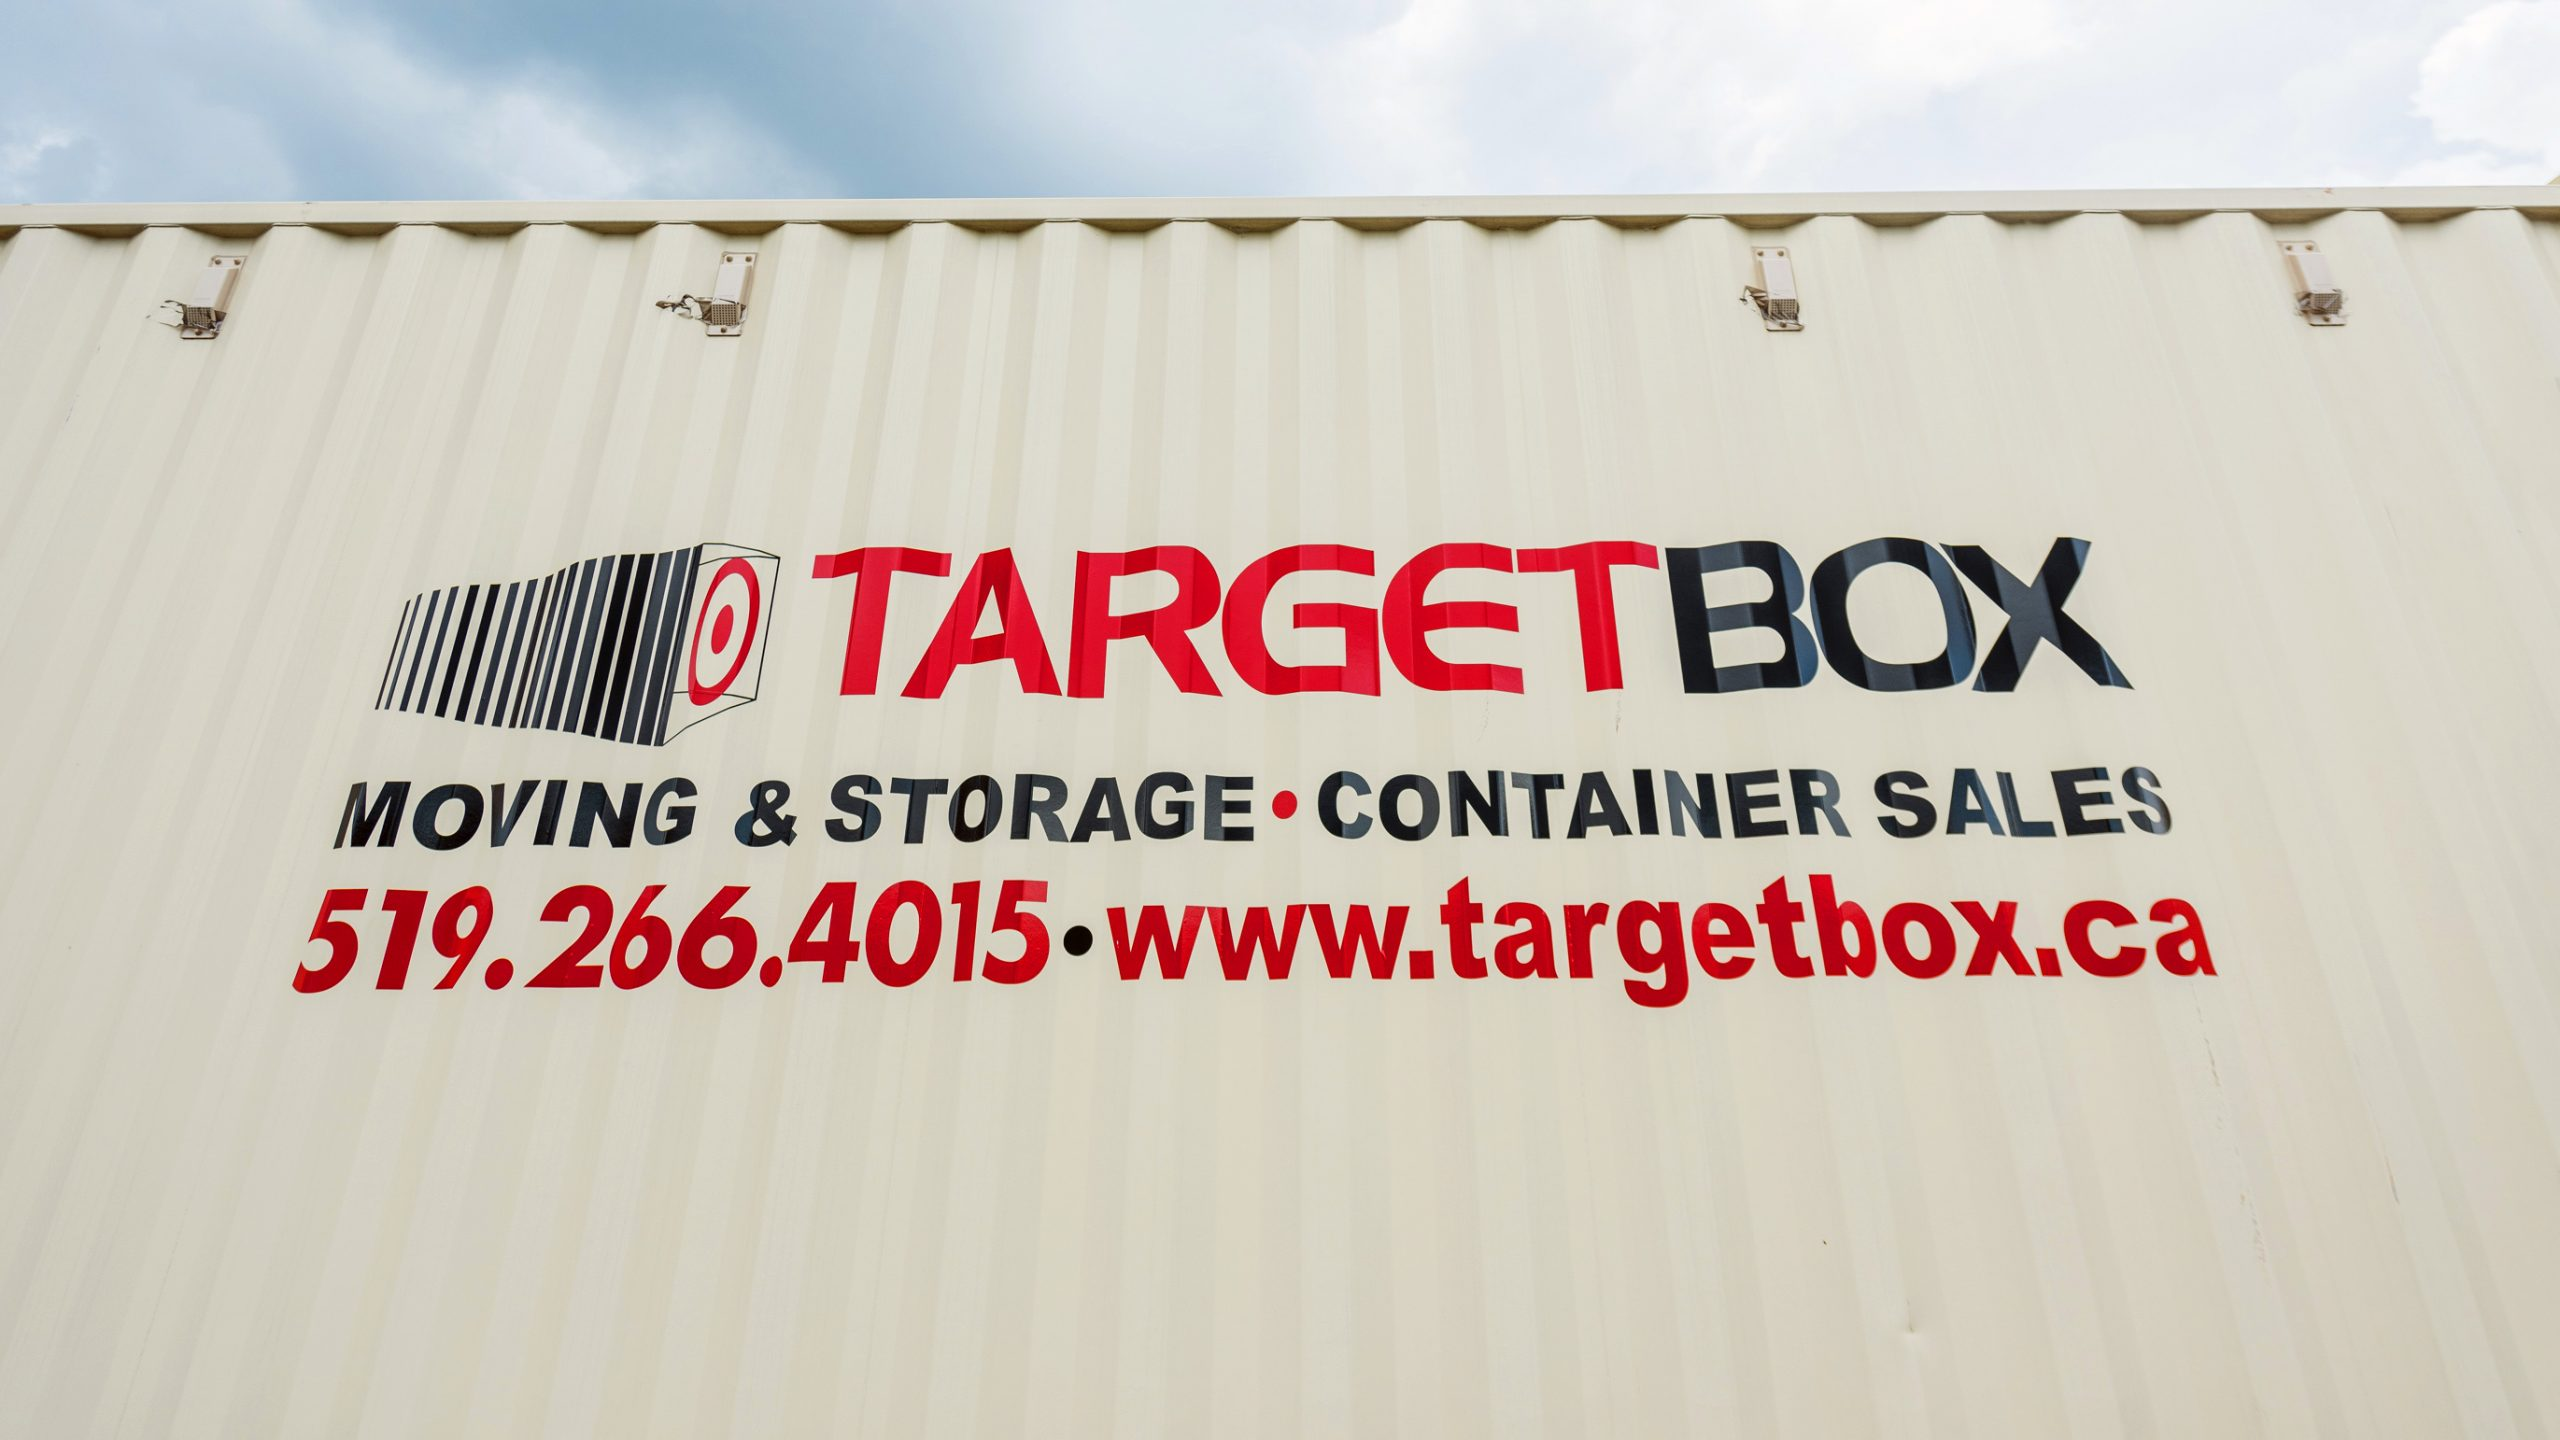 TargetBox Shipping Container